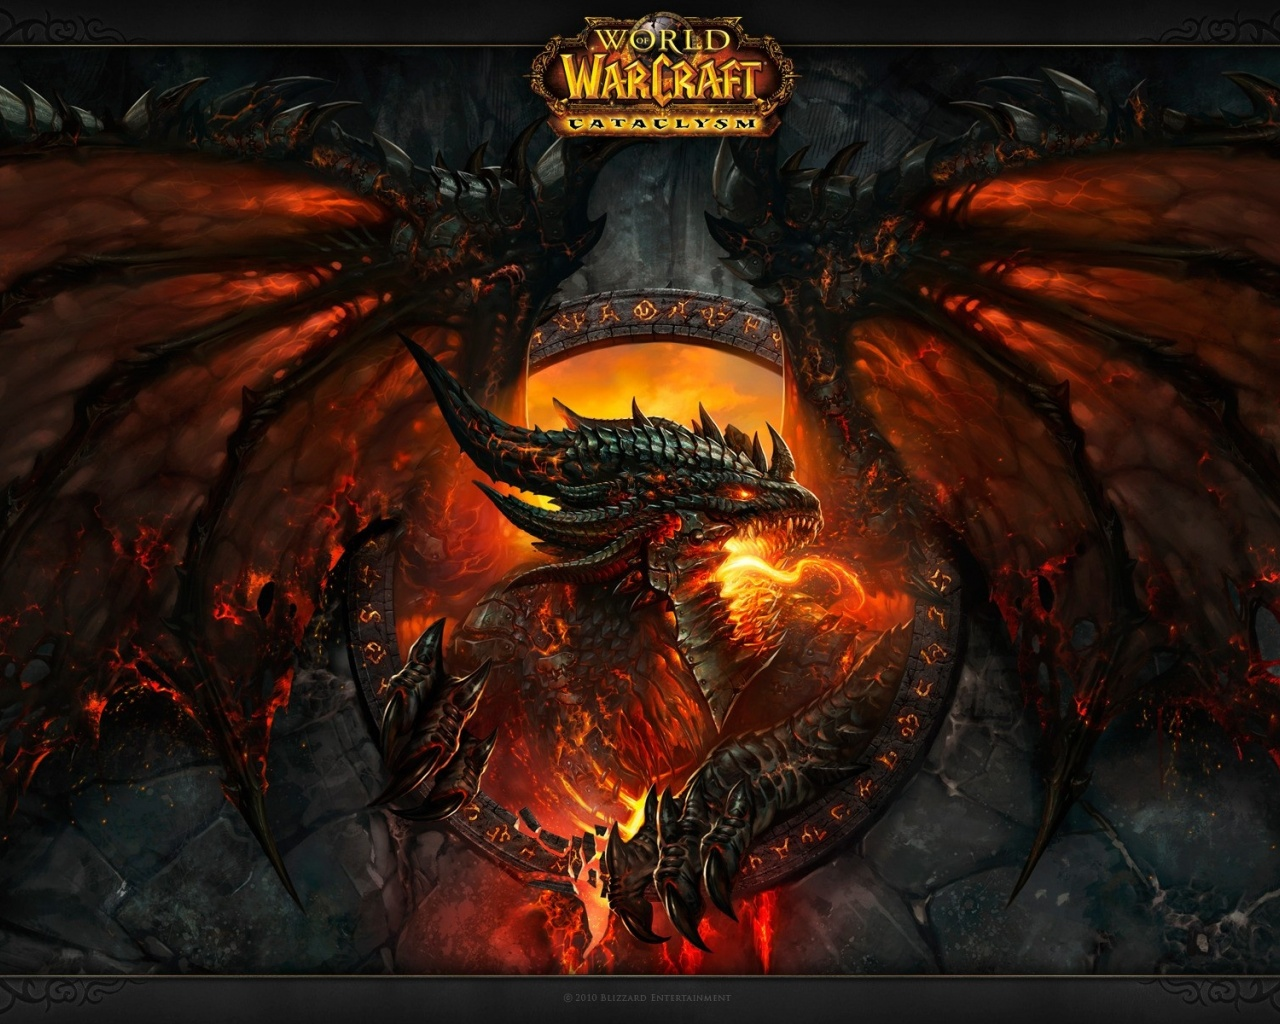 1280x1024 Wow Cataclysm World Of Warcraft Games Desktop Pc And